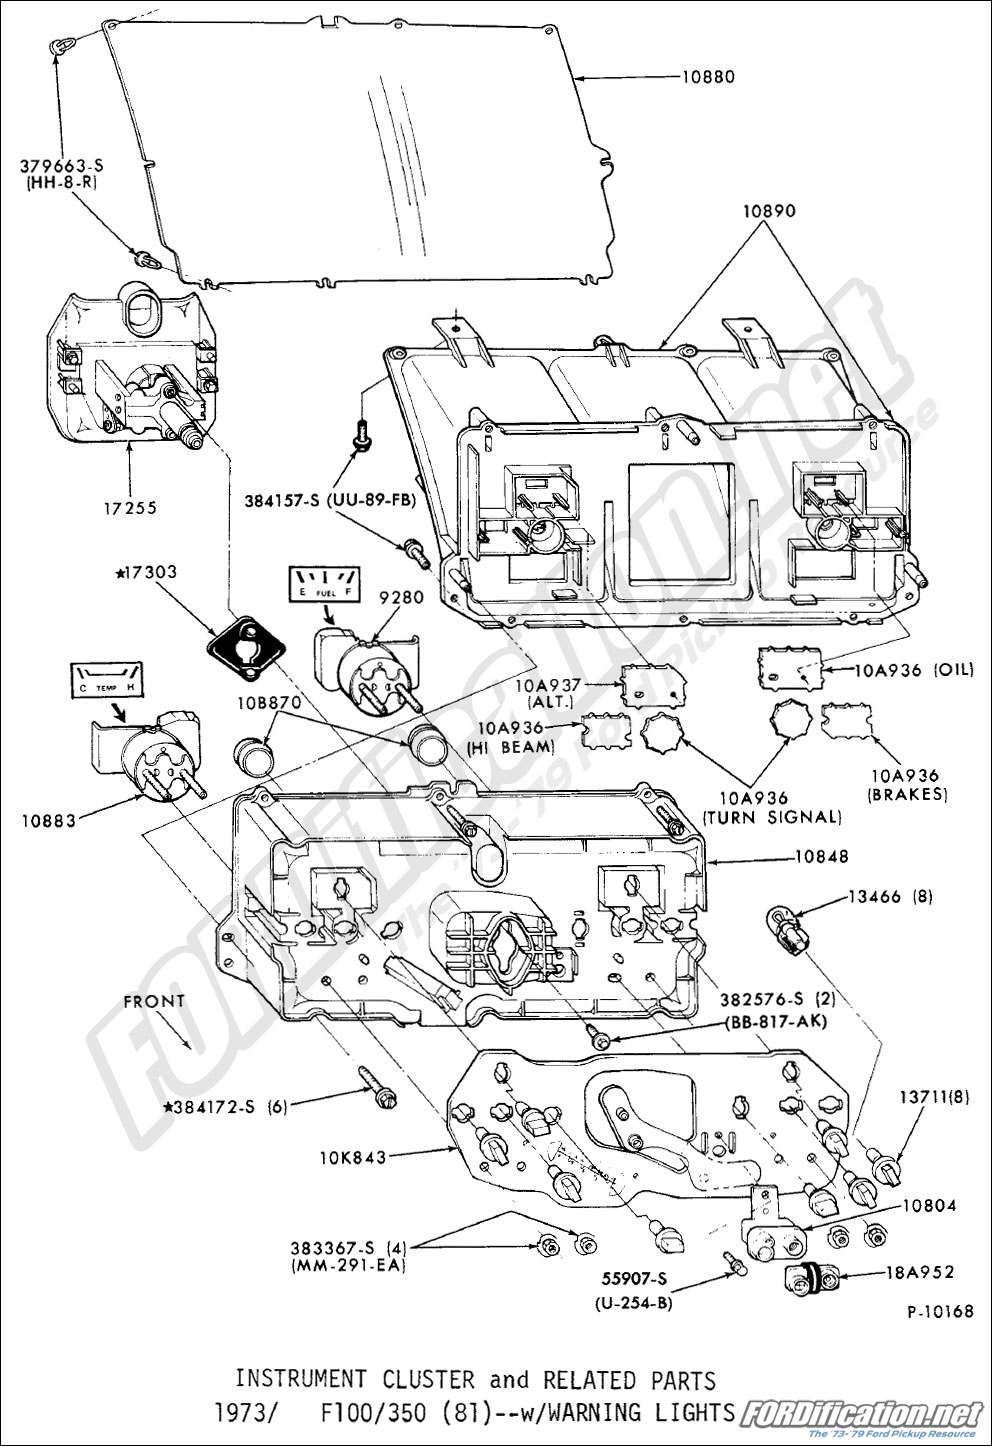 78 Chevy Truck Dash Wiring Diagram Ford Truck Part Numbers Instrument Panel Fordification Net